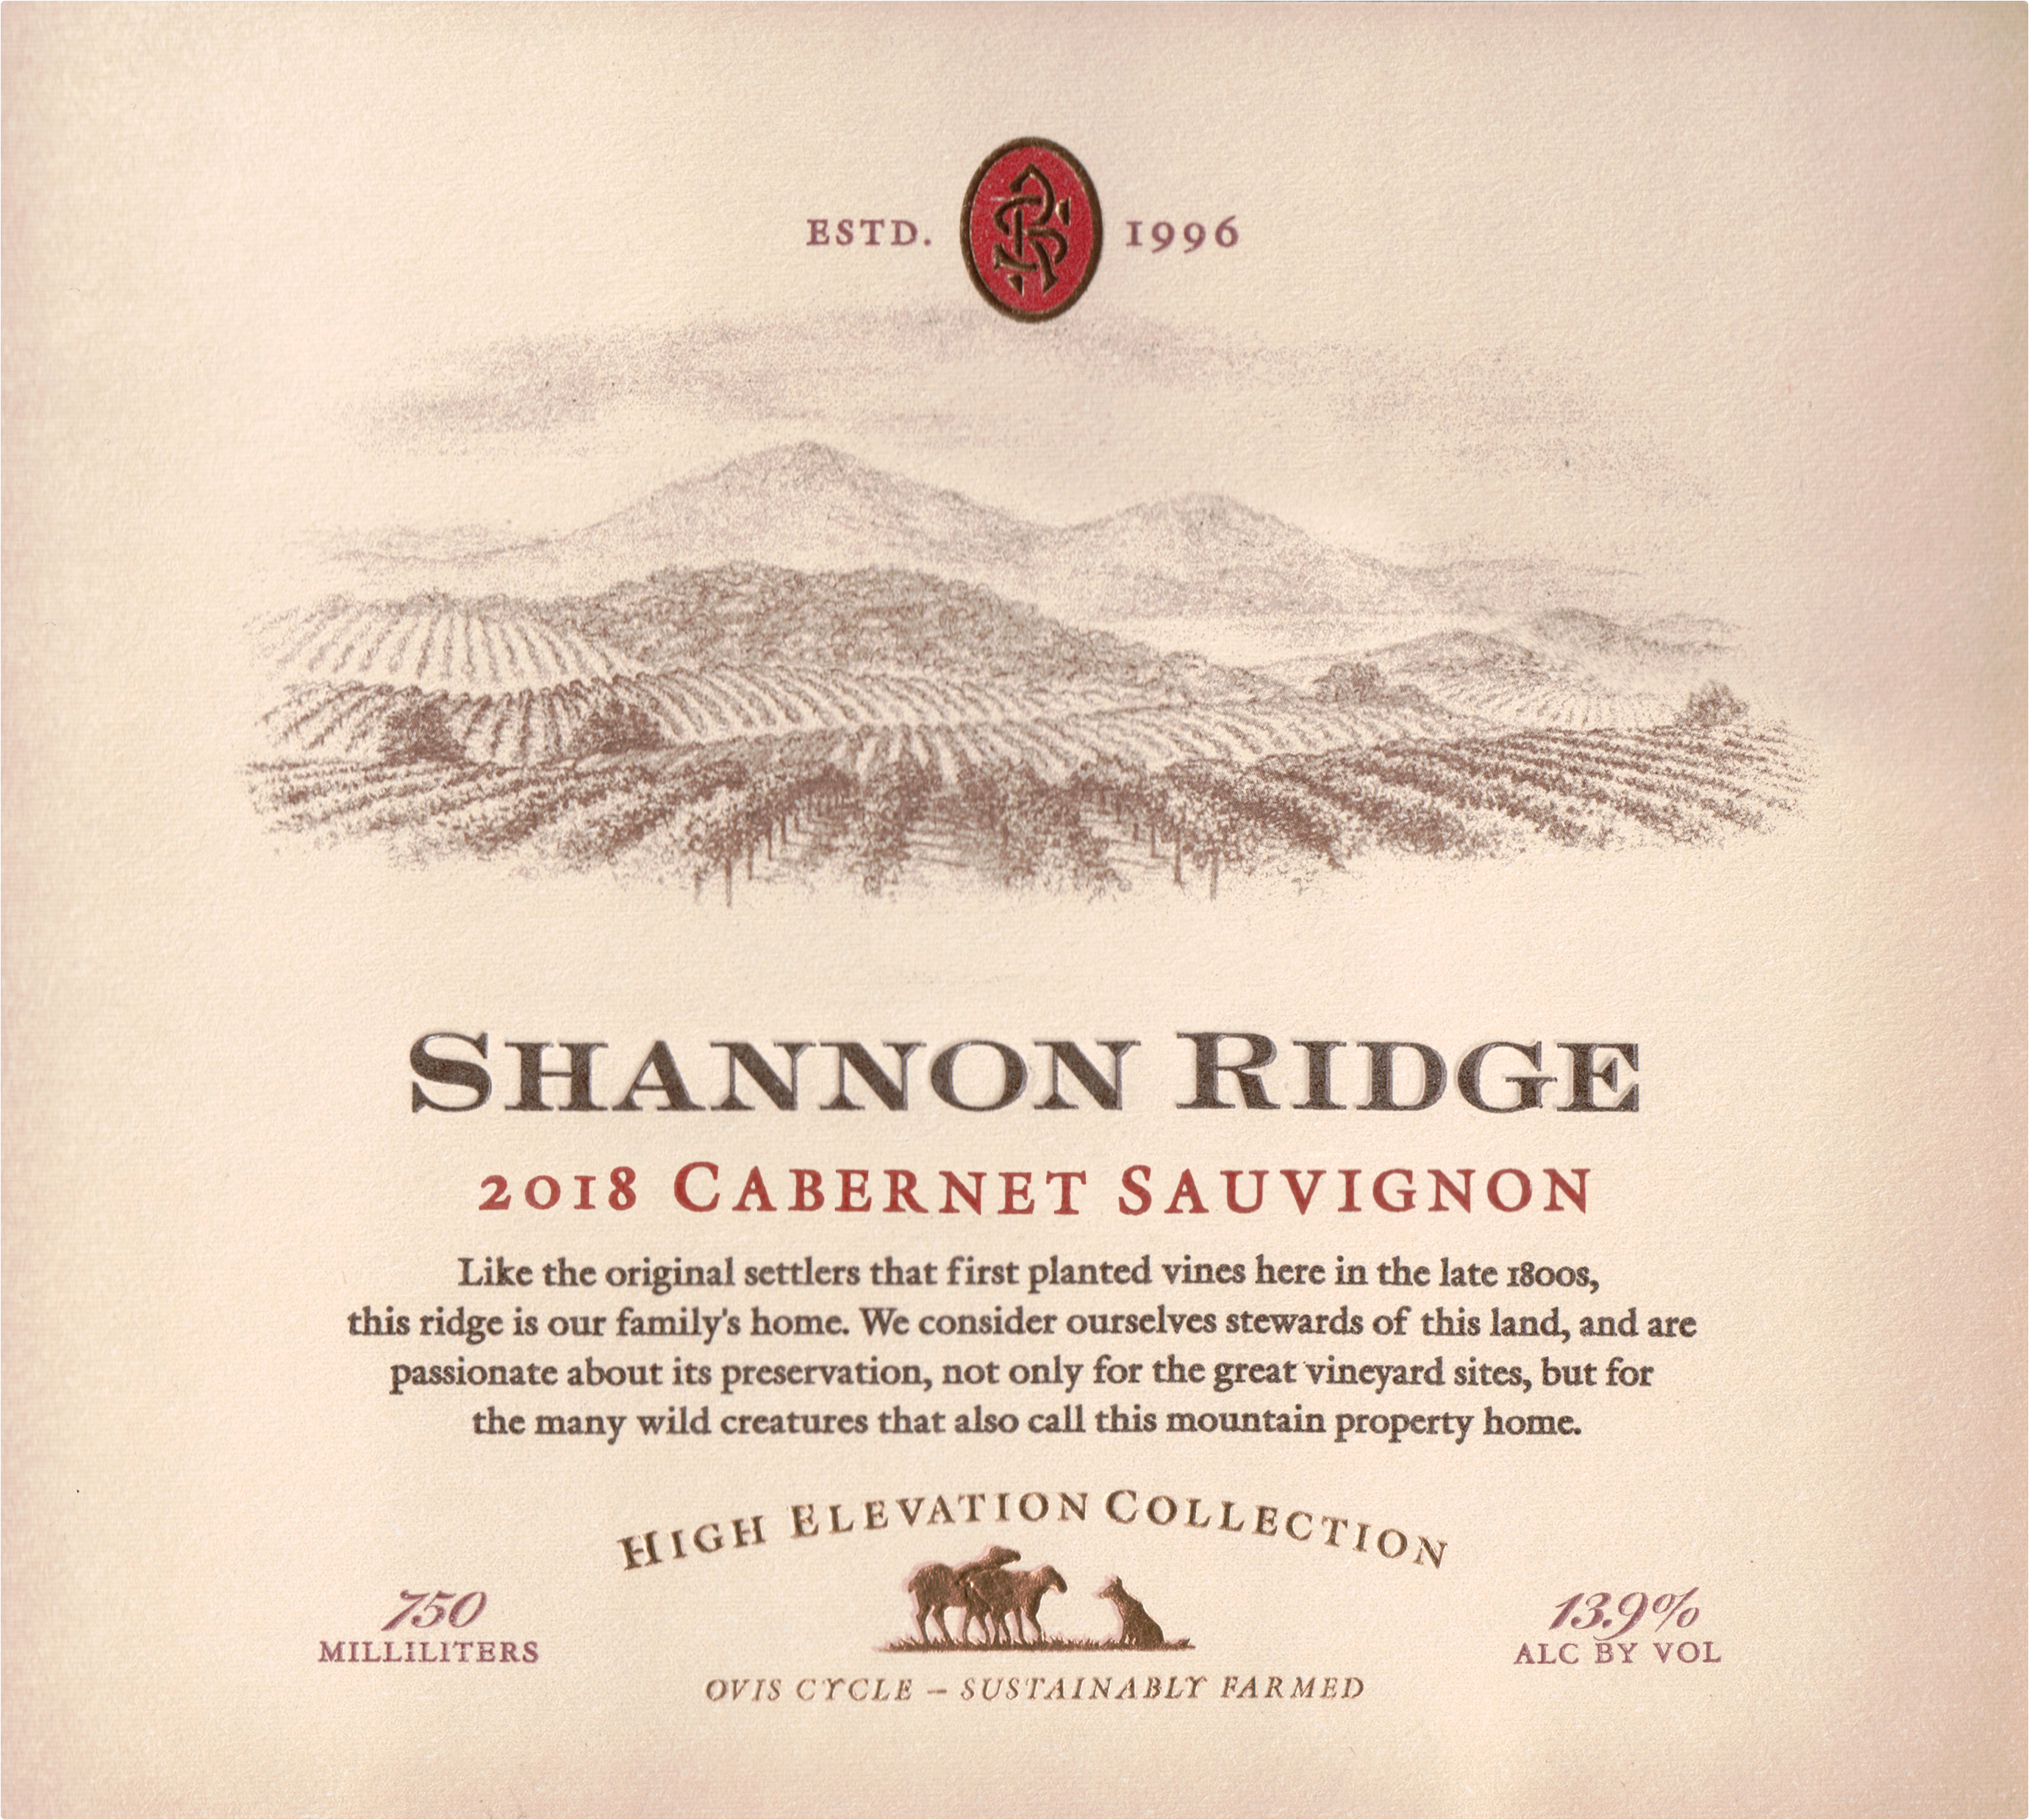 Shannon Ridge High Elevation Cabernet Sauvignon 2018